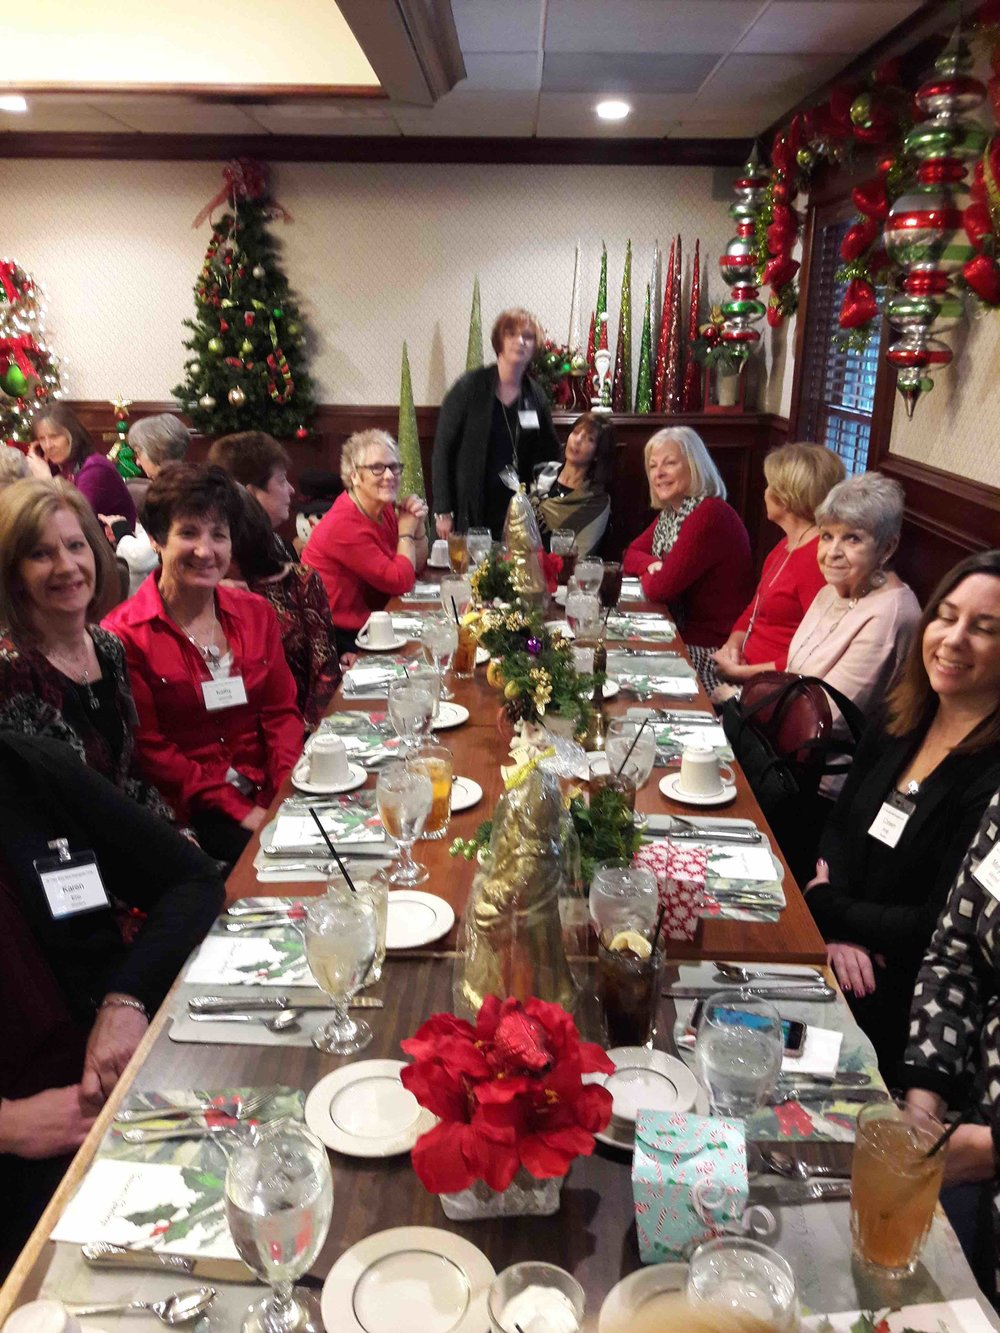 Group at Table 20181212_114026 copy.jpg